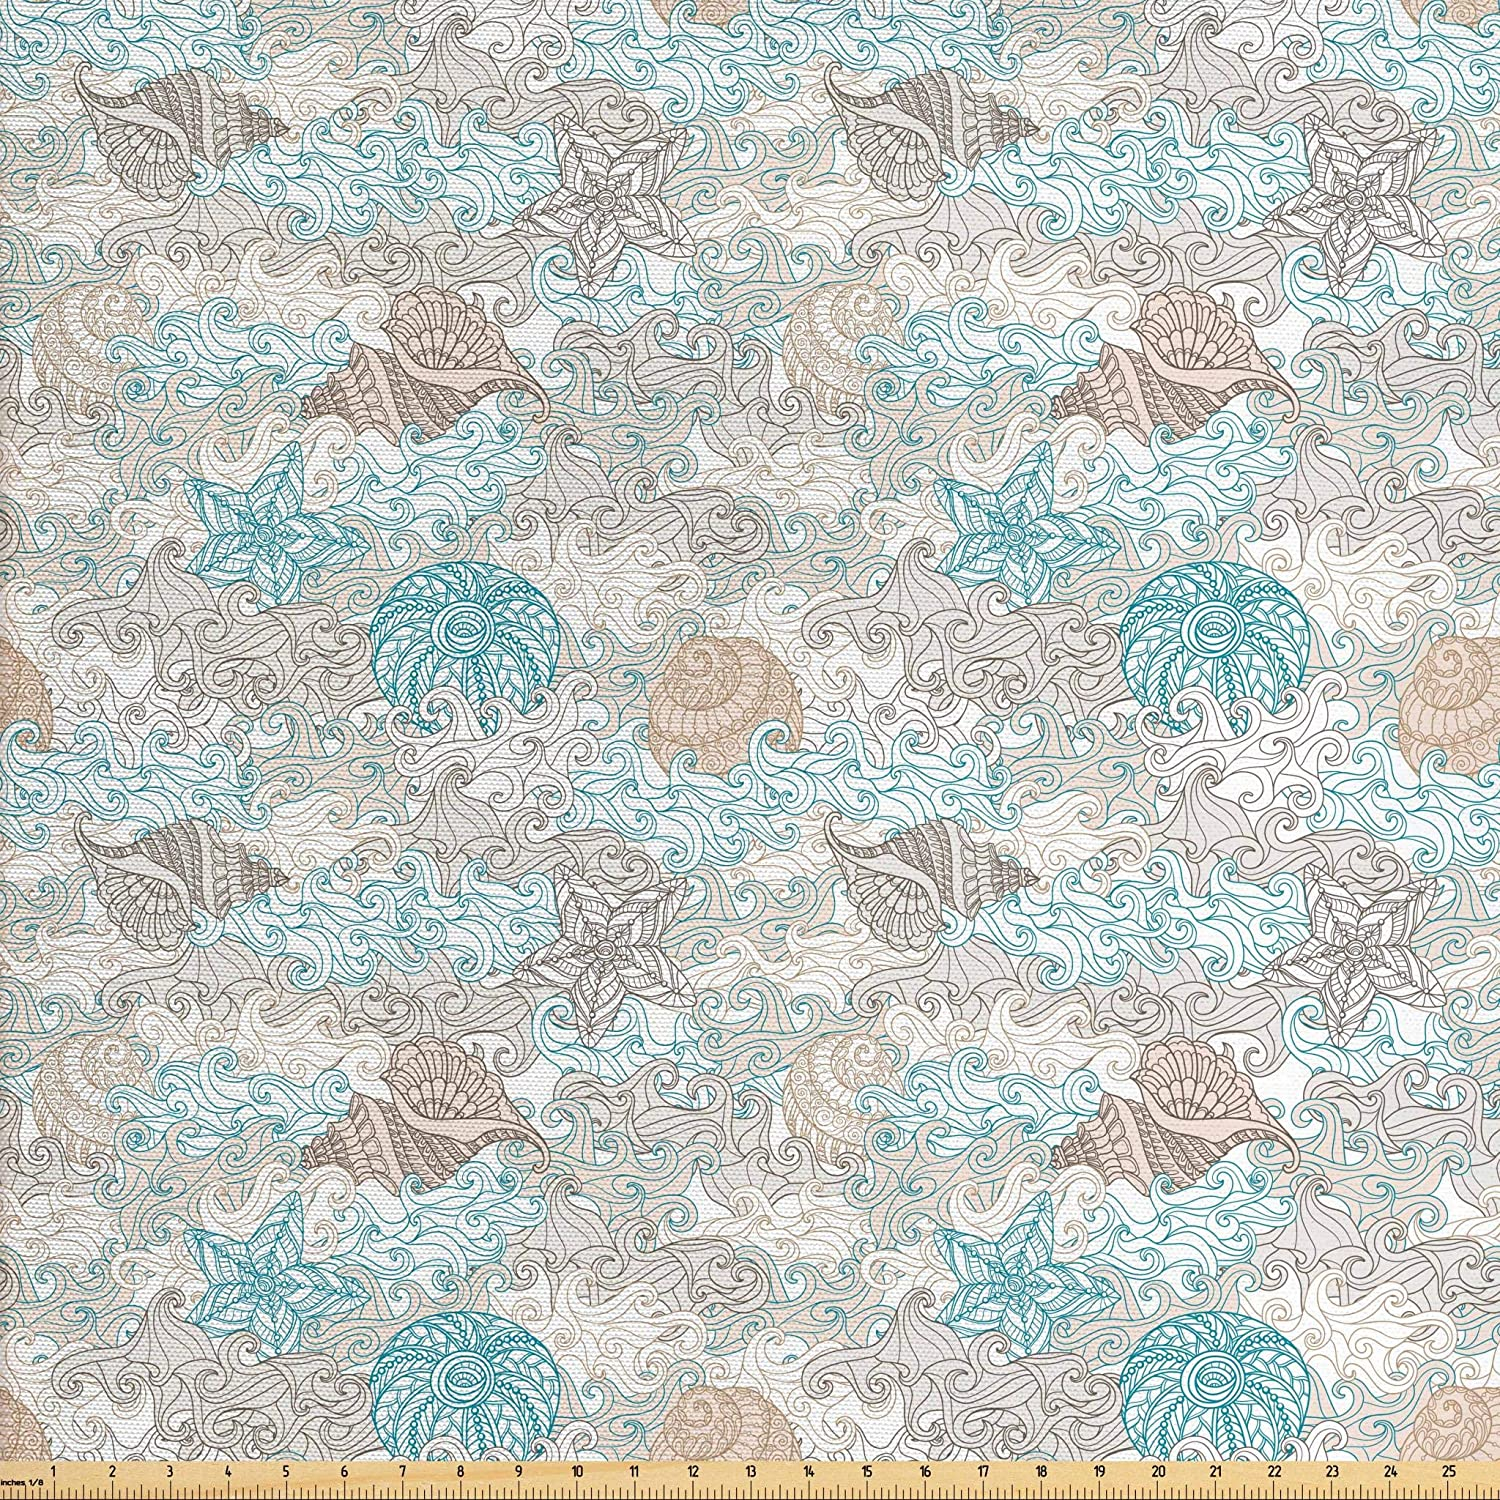 Ambesonne Nautical Fabric by The Yard, Pastel Toned Sea Shell Starfish Mollusk Seahorse Coral Reef Motif Design, Decorative Fabric for Upholstery and Home Accents, 1 Yard, Tan Turquoise